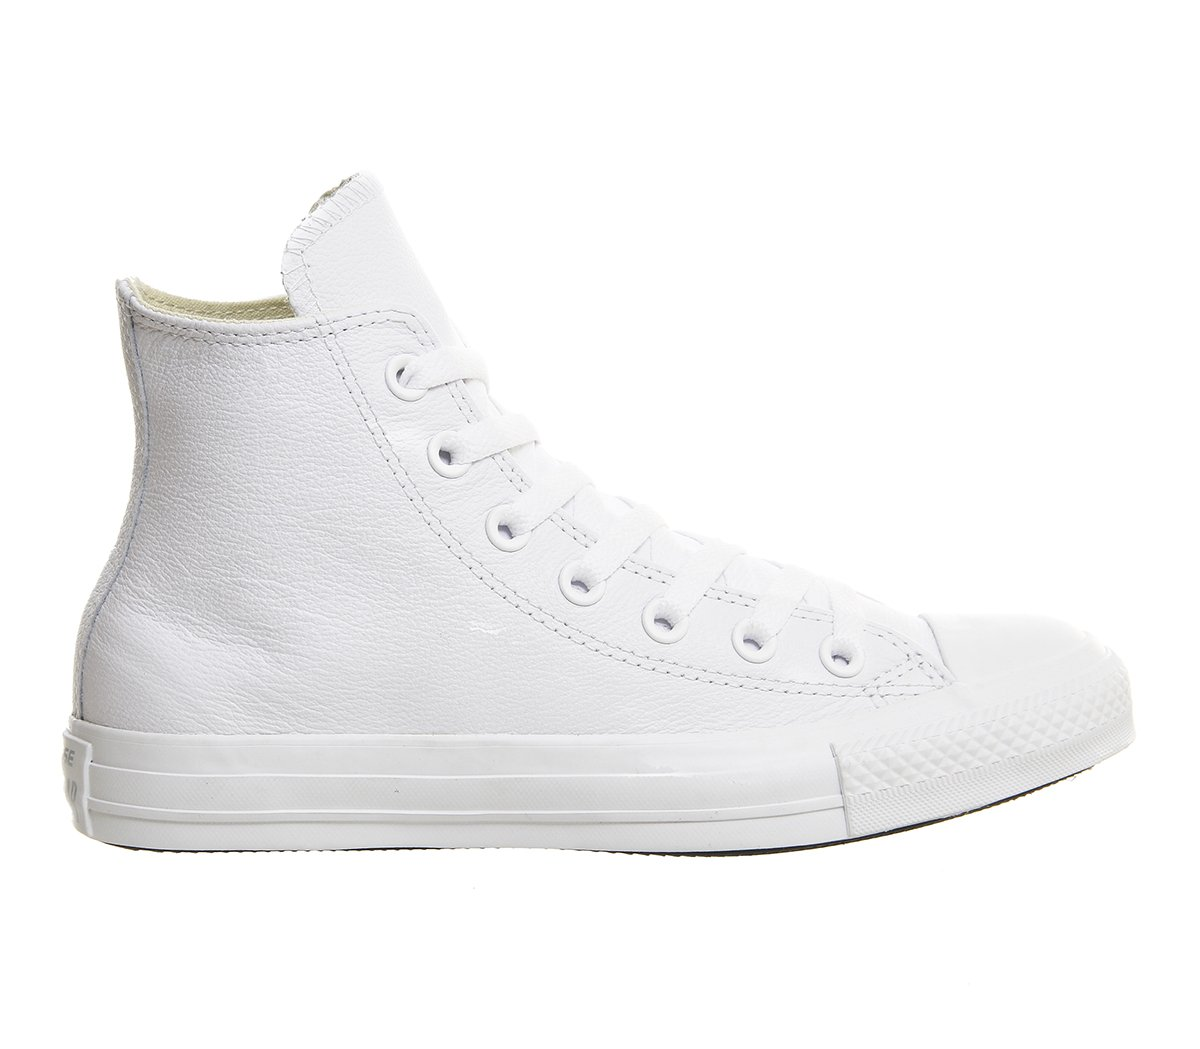 Converse Chuck Taylor All Star Leather High Top Sneaker B01GB3ULUS 4.5 D(M) US|White Mono